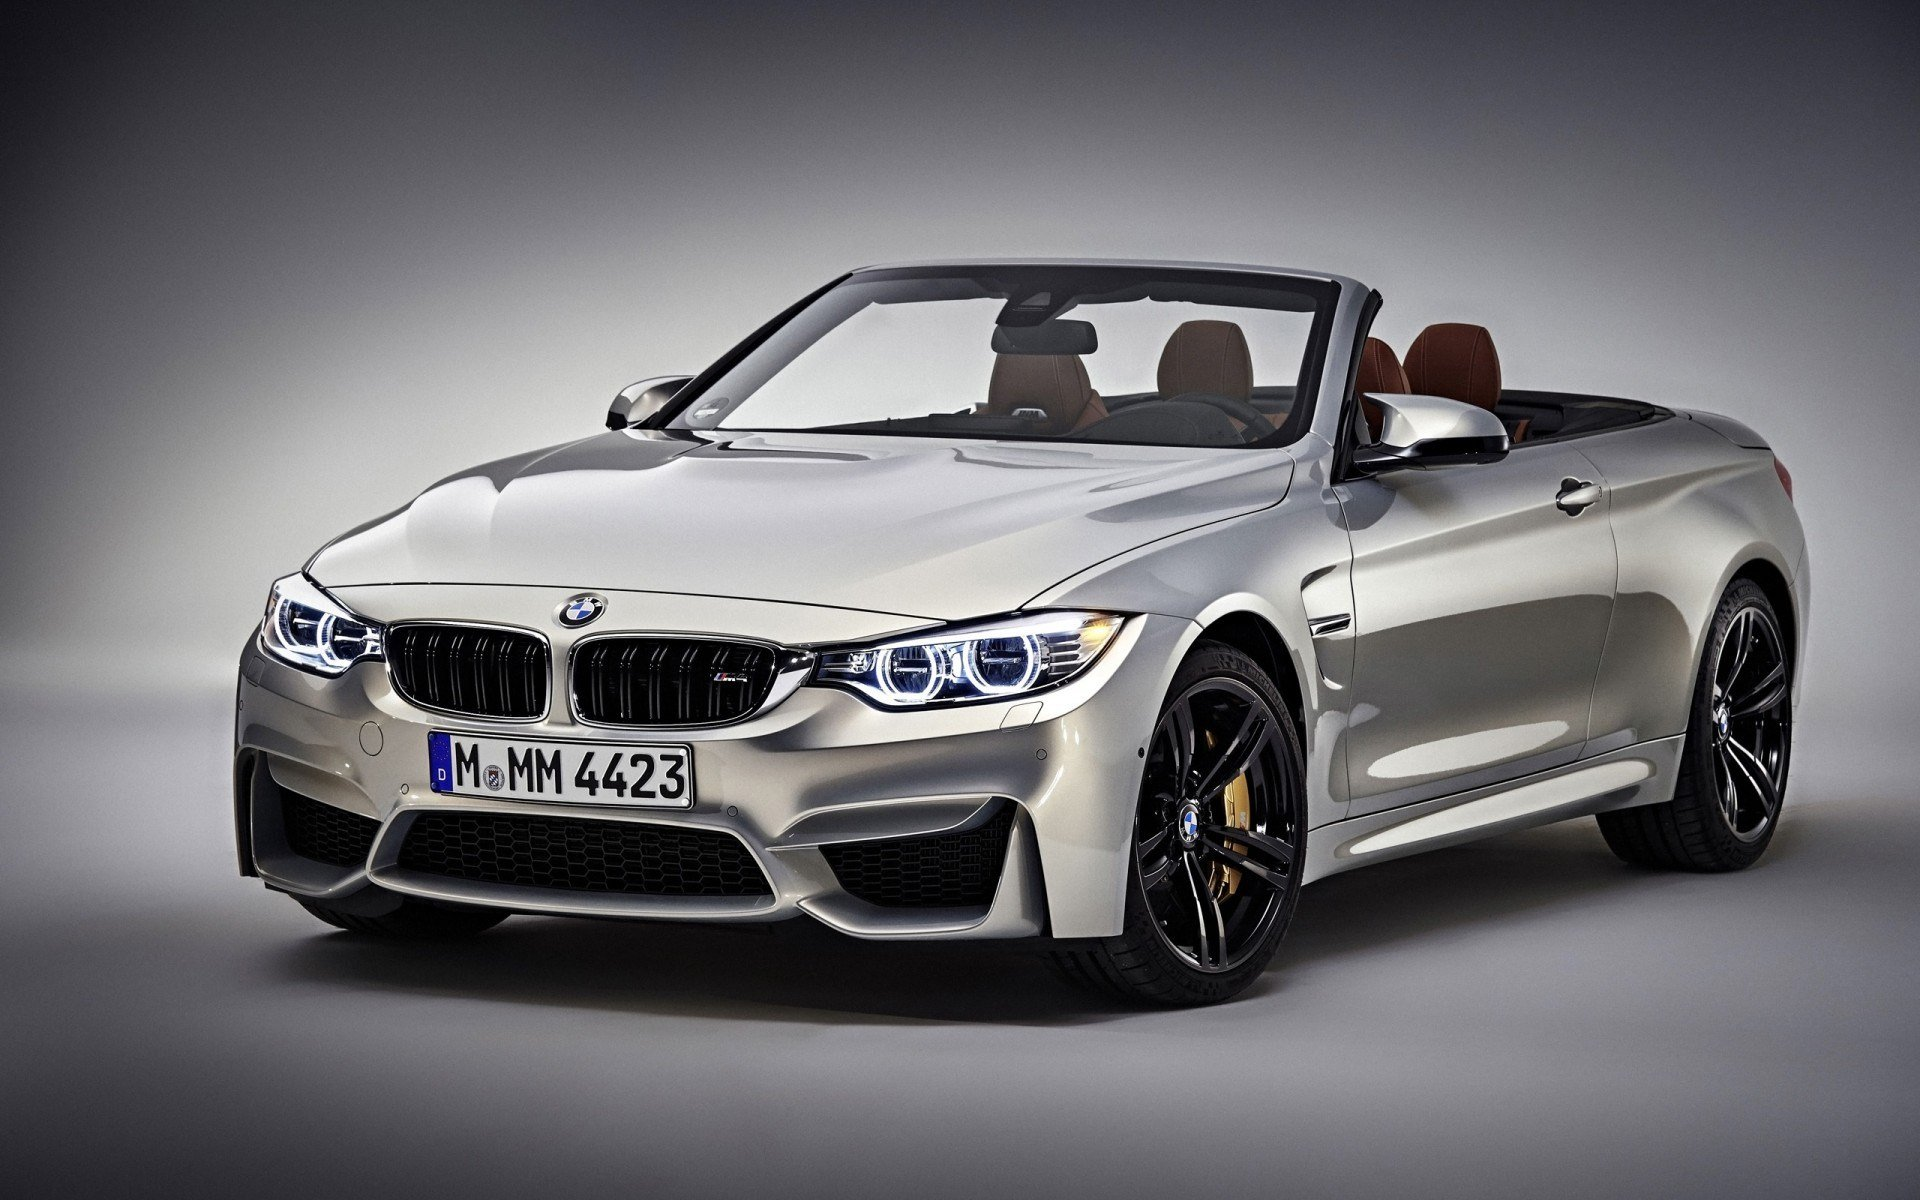 Latest 2015 Bmw M4 Convertible Wallpaper Hd Car Wallpapers Id Free Download